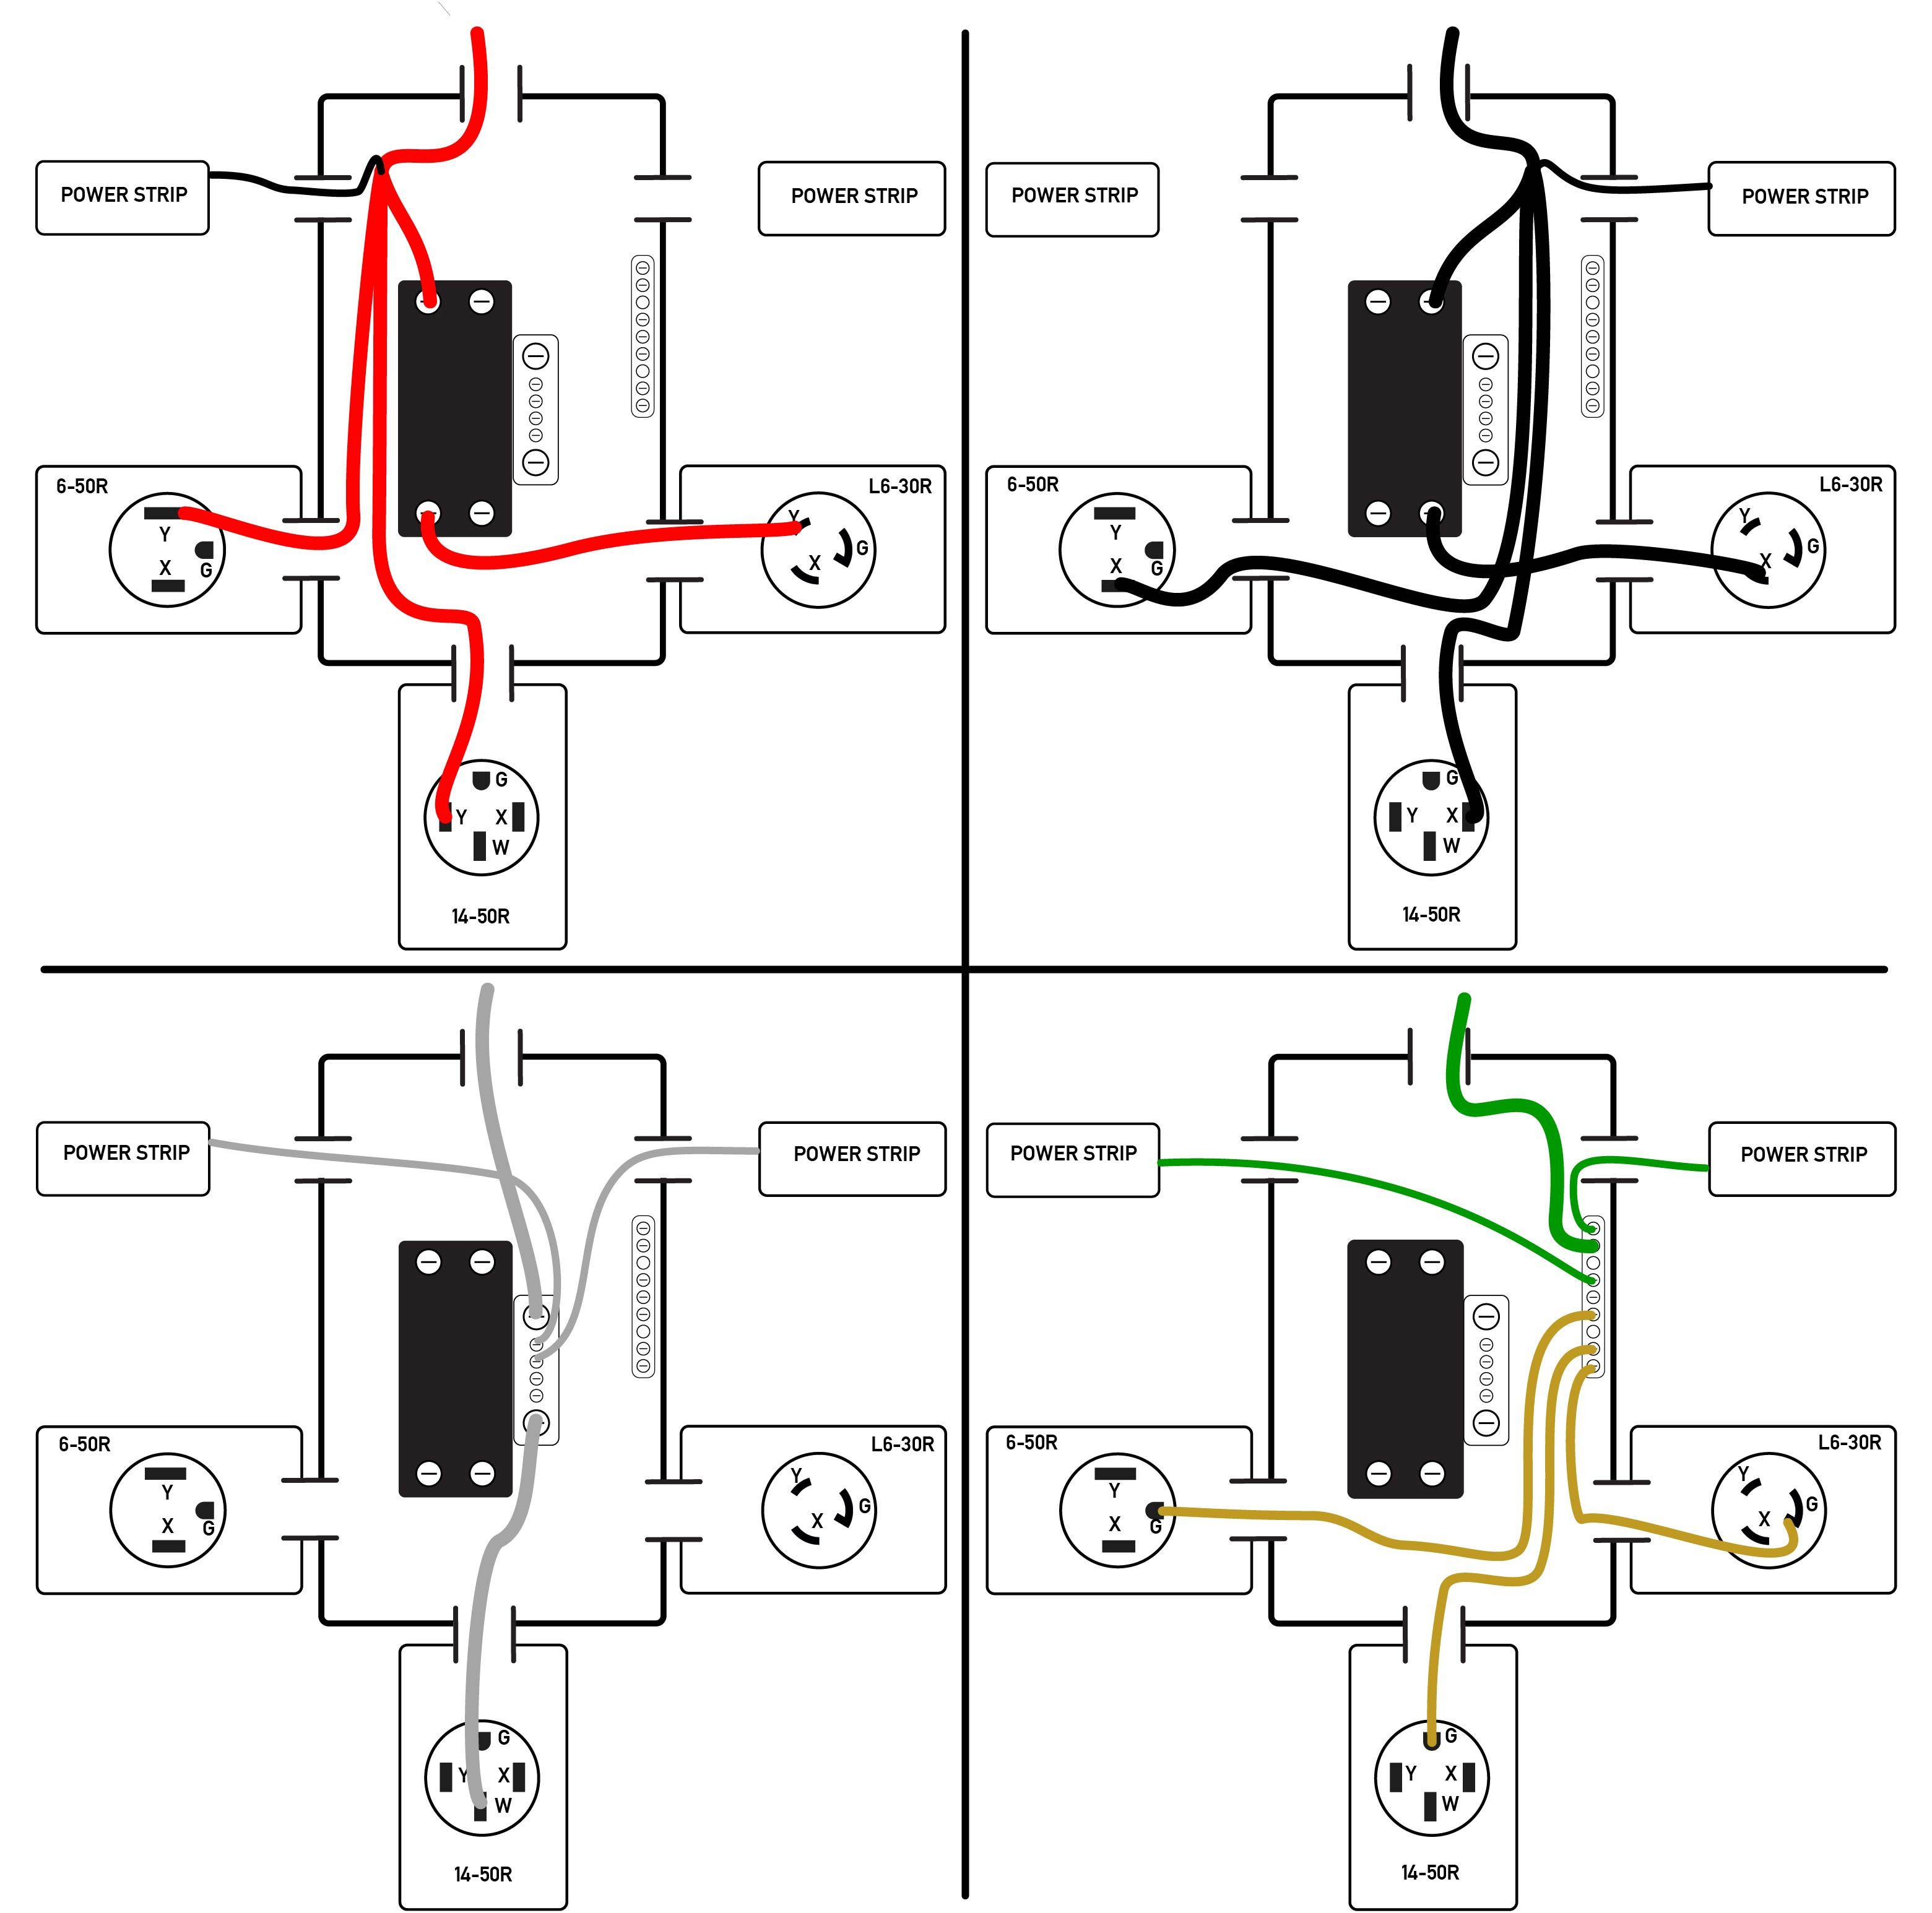 power strip wiring diagram   26 wiring diagram images